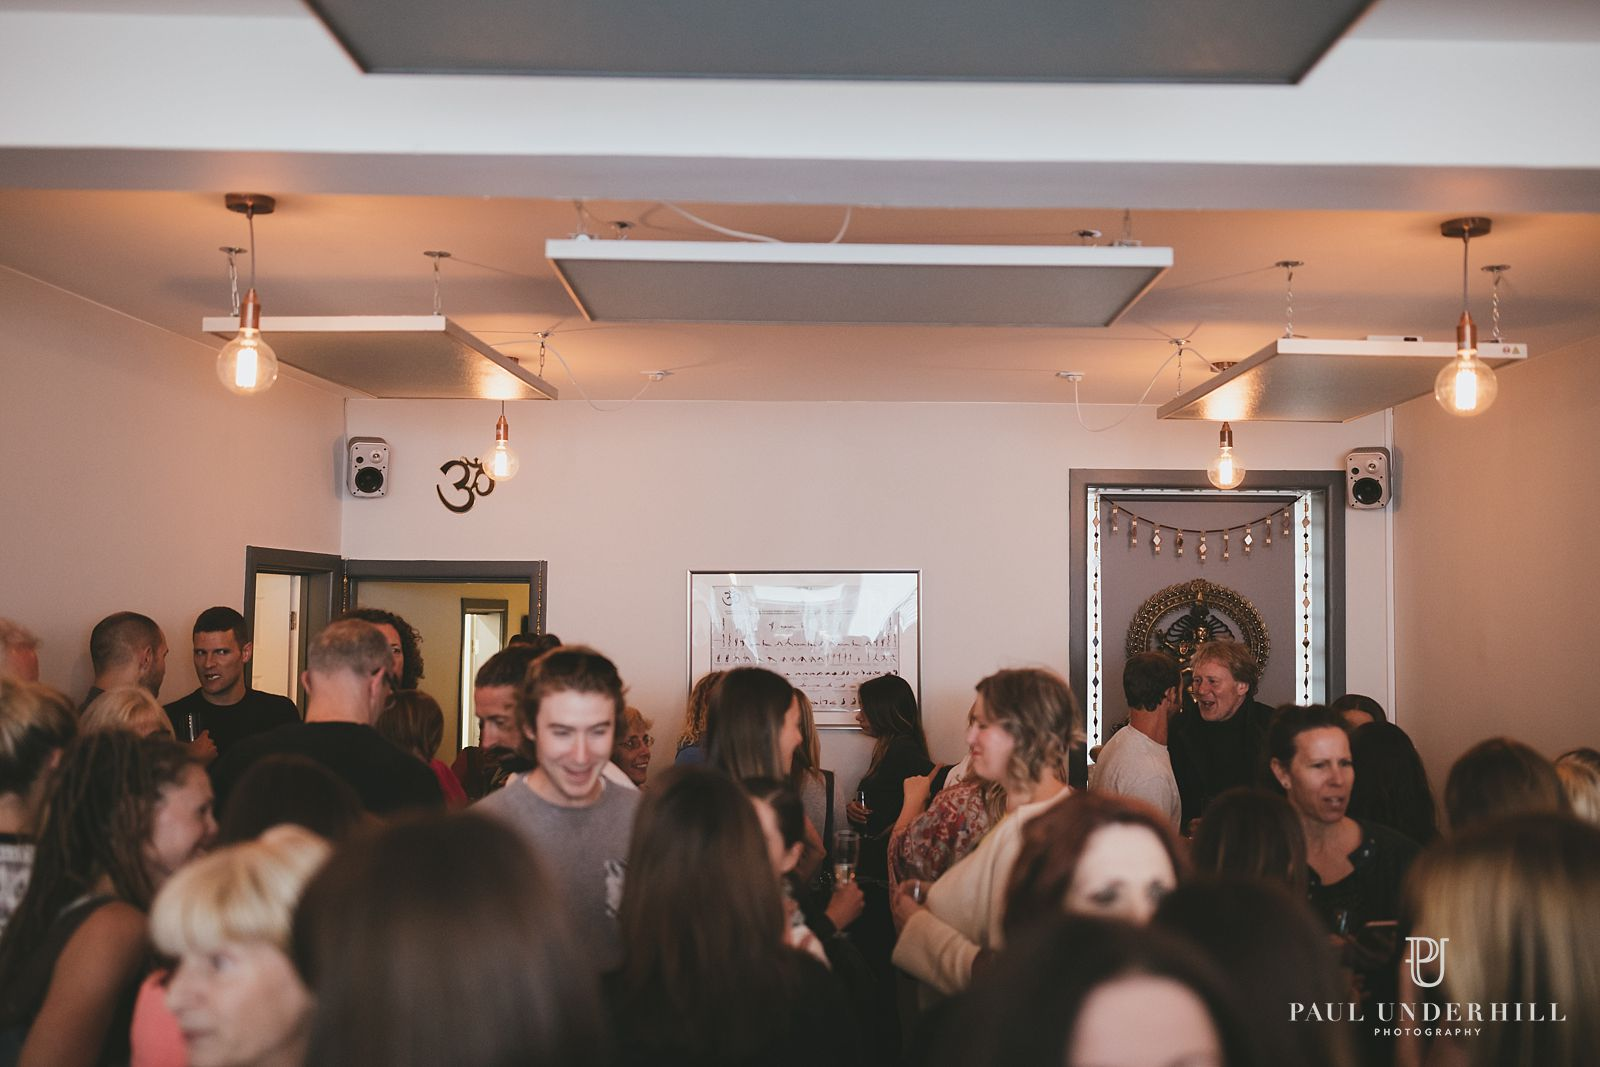 Reportage event photography in Poole